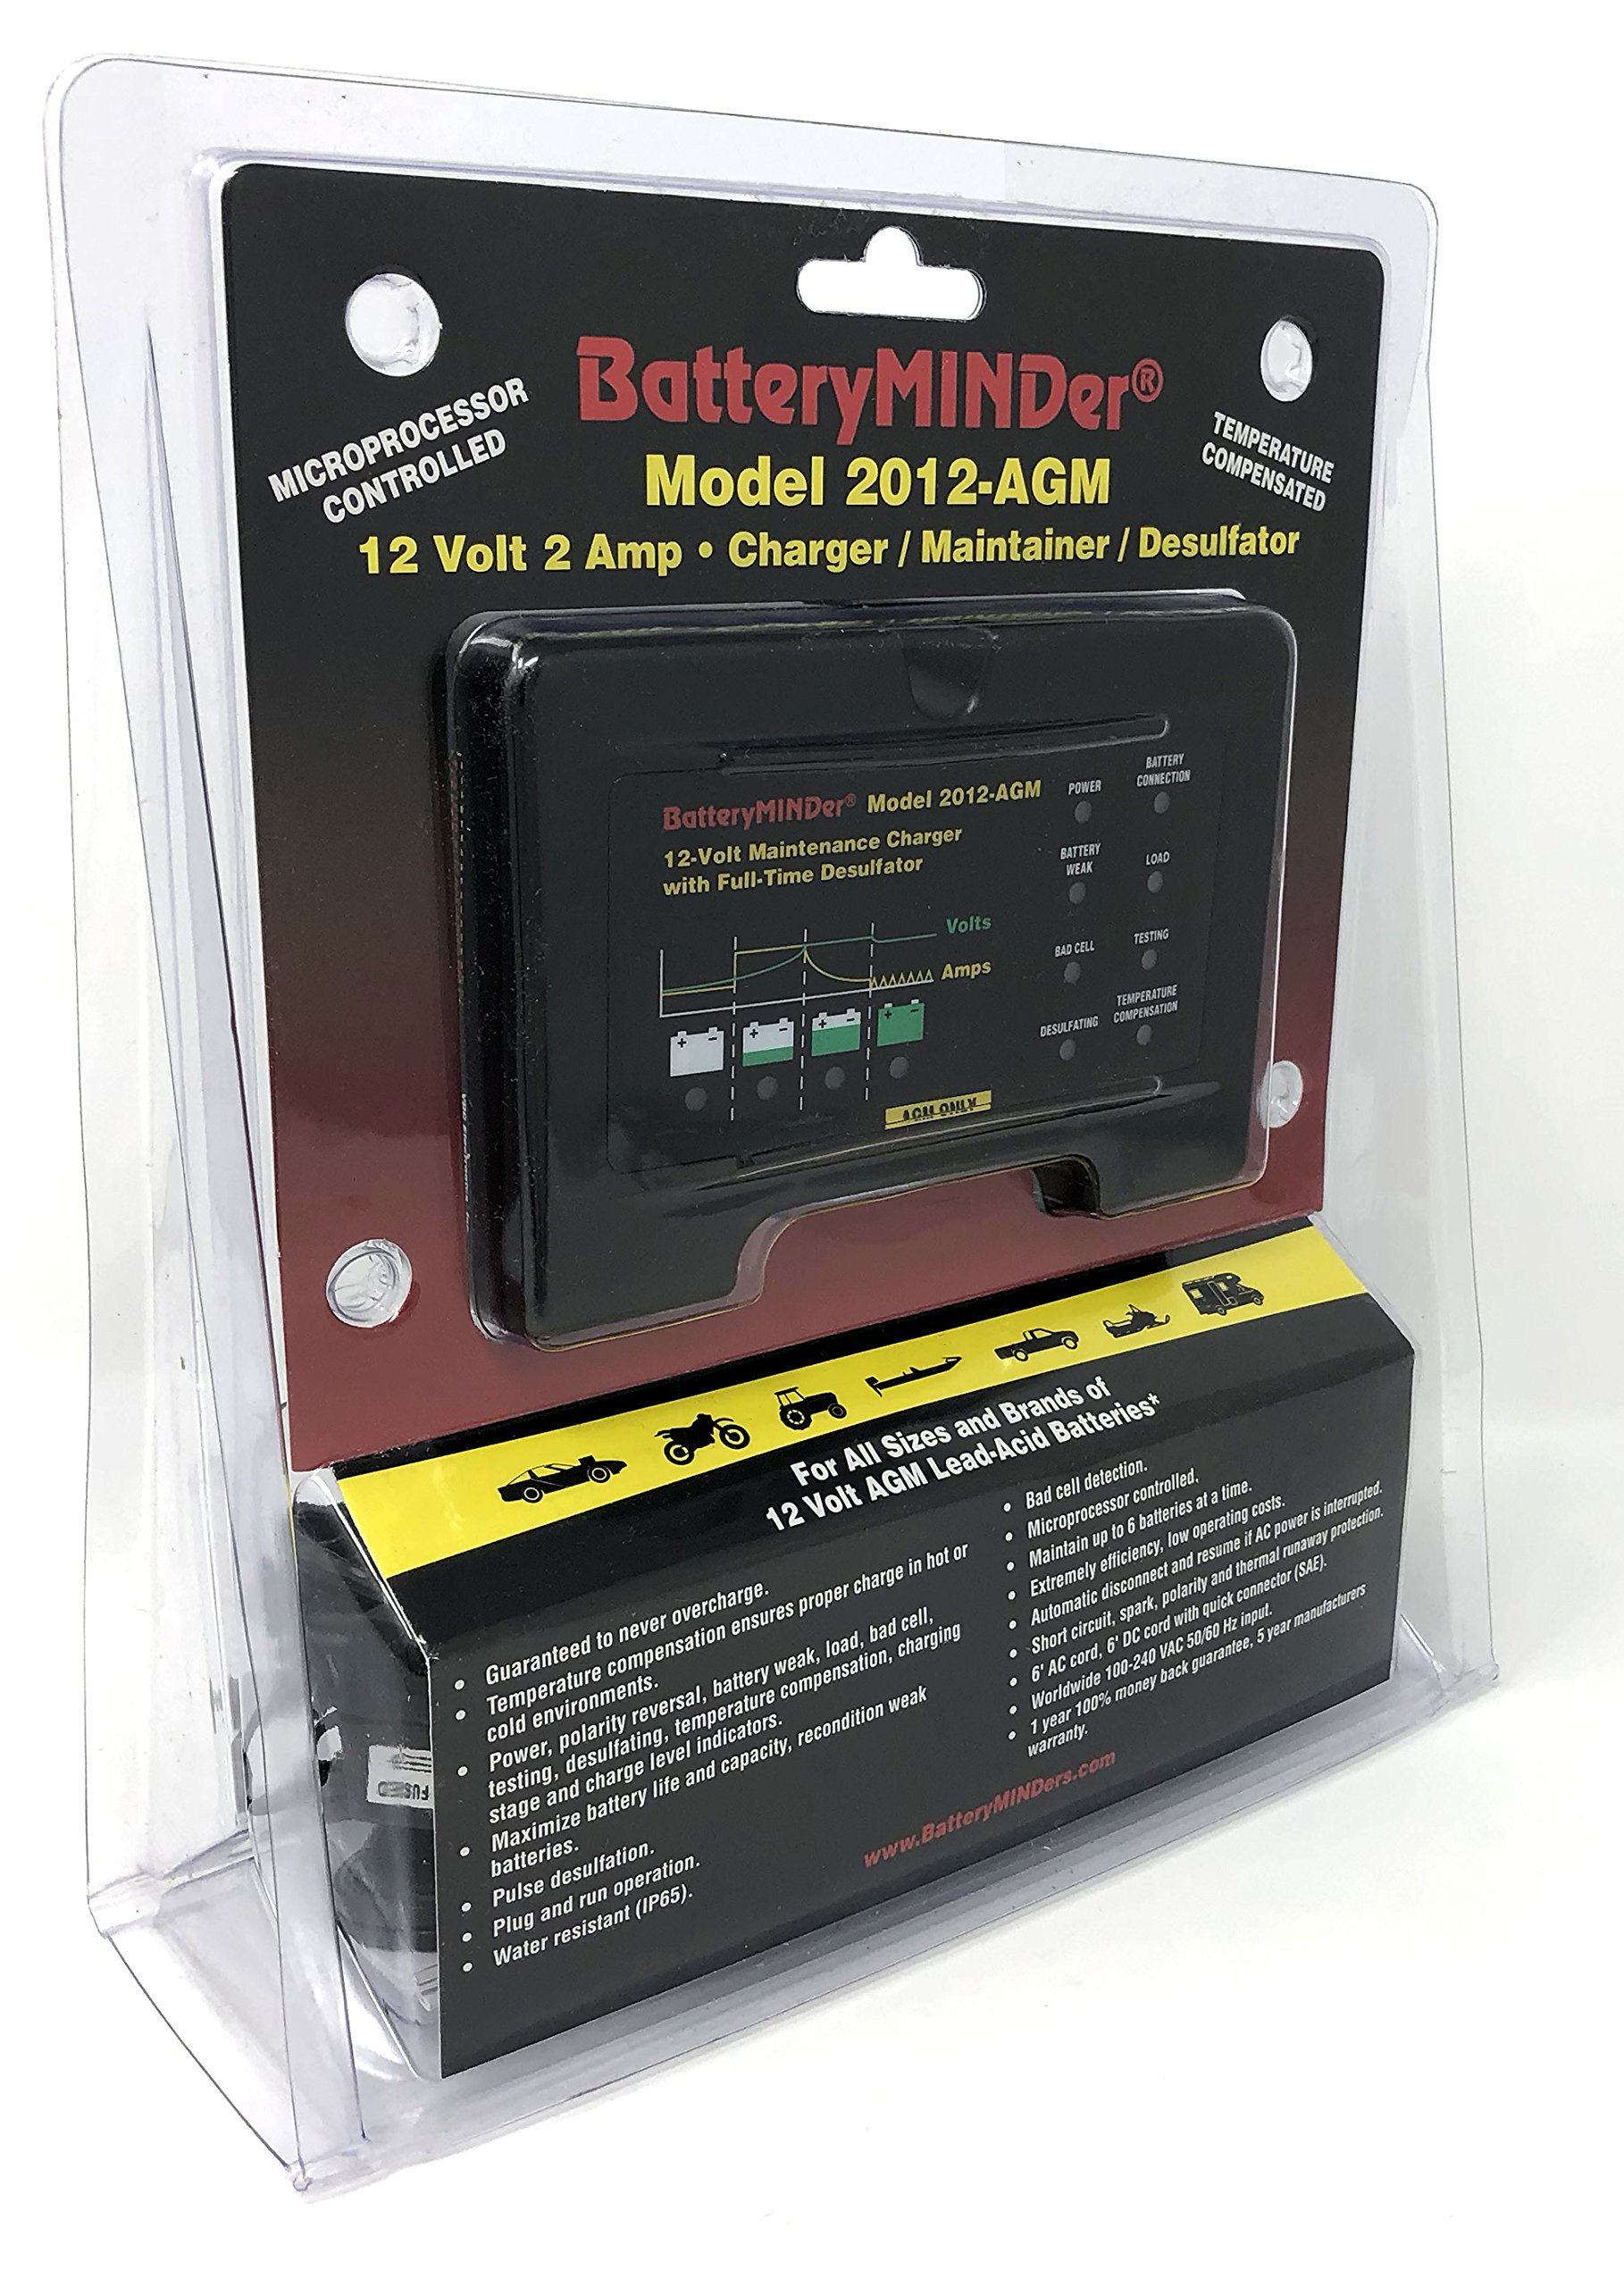 BatteryMINDer Model 2012-AGM: 12Volt-2 Amp Battery Charger Maintainer/Desulfator for Odyssey, Optima and AGM Lead-Acid Batteries - Designed for Cars, Trucks, Motorcycles, ATV, Boat, RV, etc. by BatteryMINDer (Image #2)